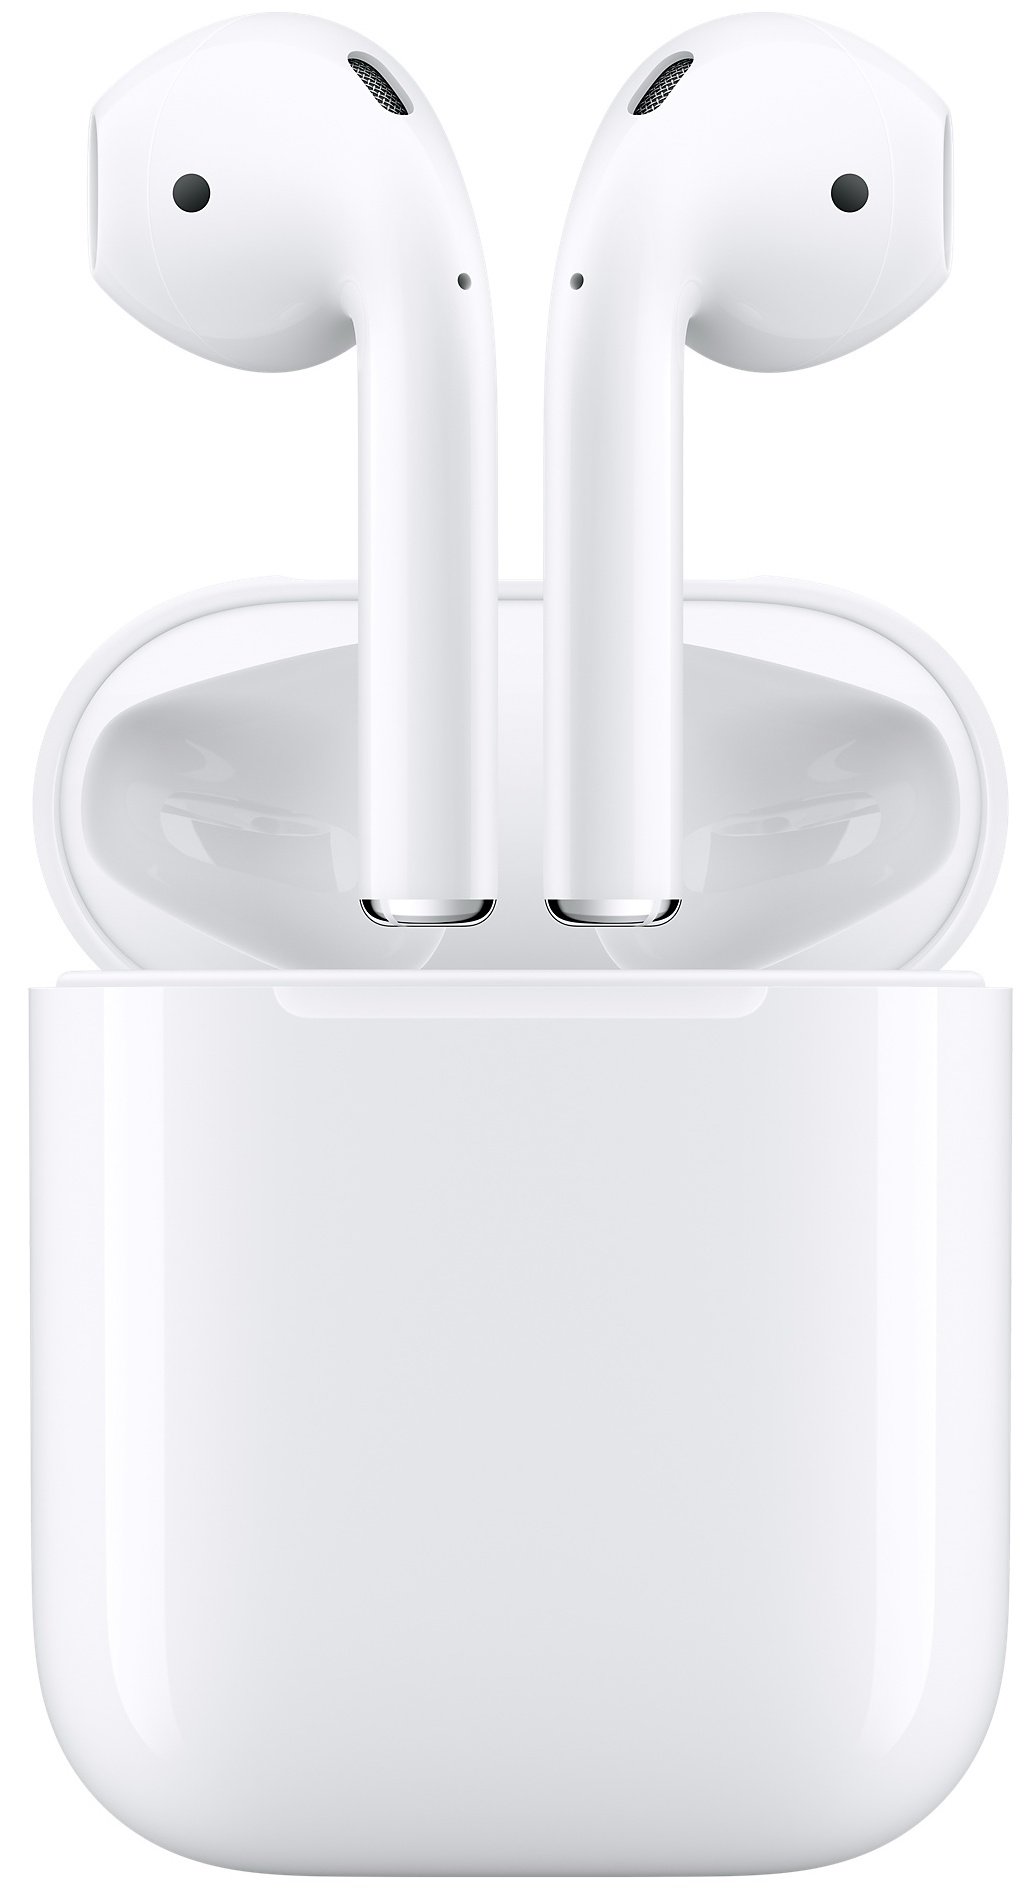 Offerta Apple AirPods 2 su TrovaUsati.it